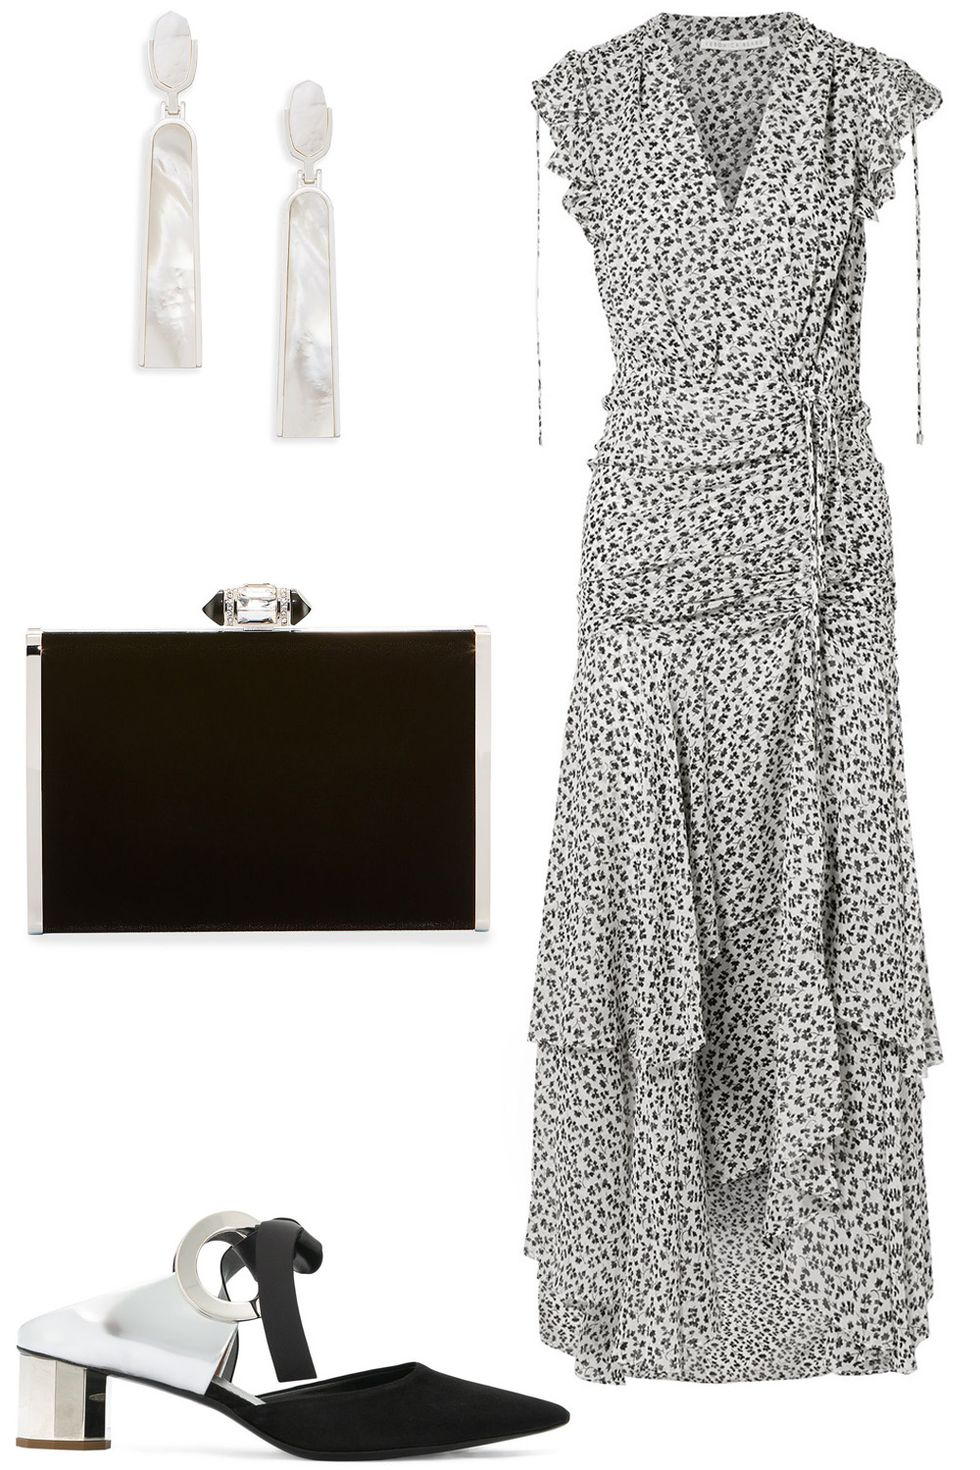 what-to-wear-for-a-summer-wedding-guest-outfit-white-dress-maxi-print-earrings-black-bag-clutch-black-shoe-pumps-ruffle-dinner.jpg